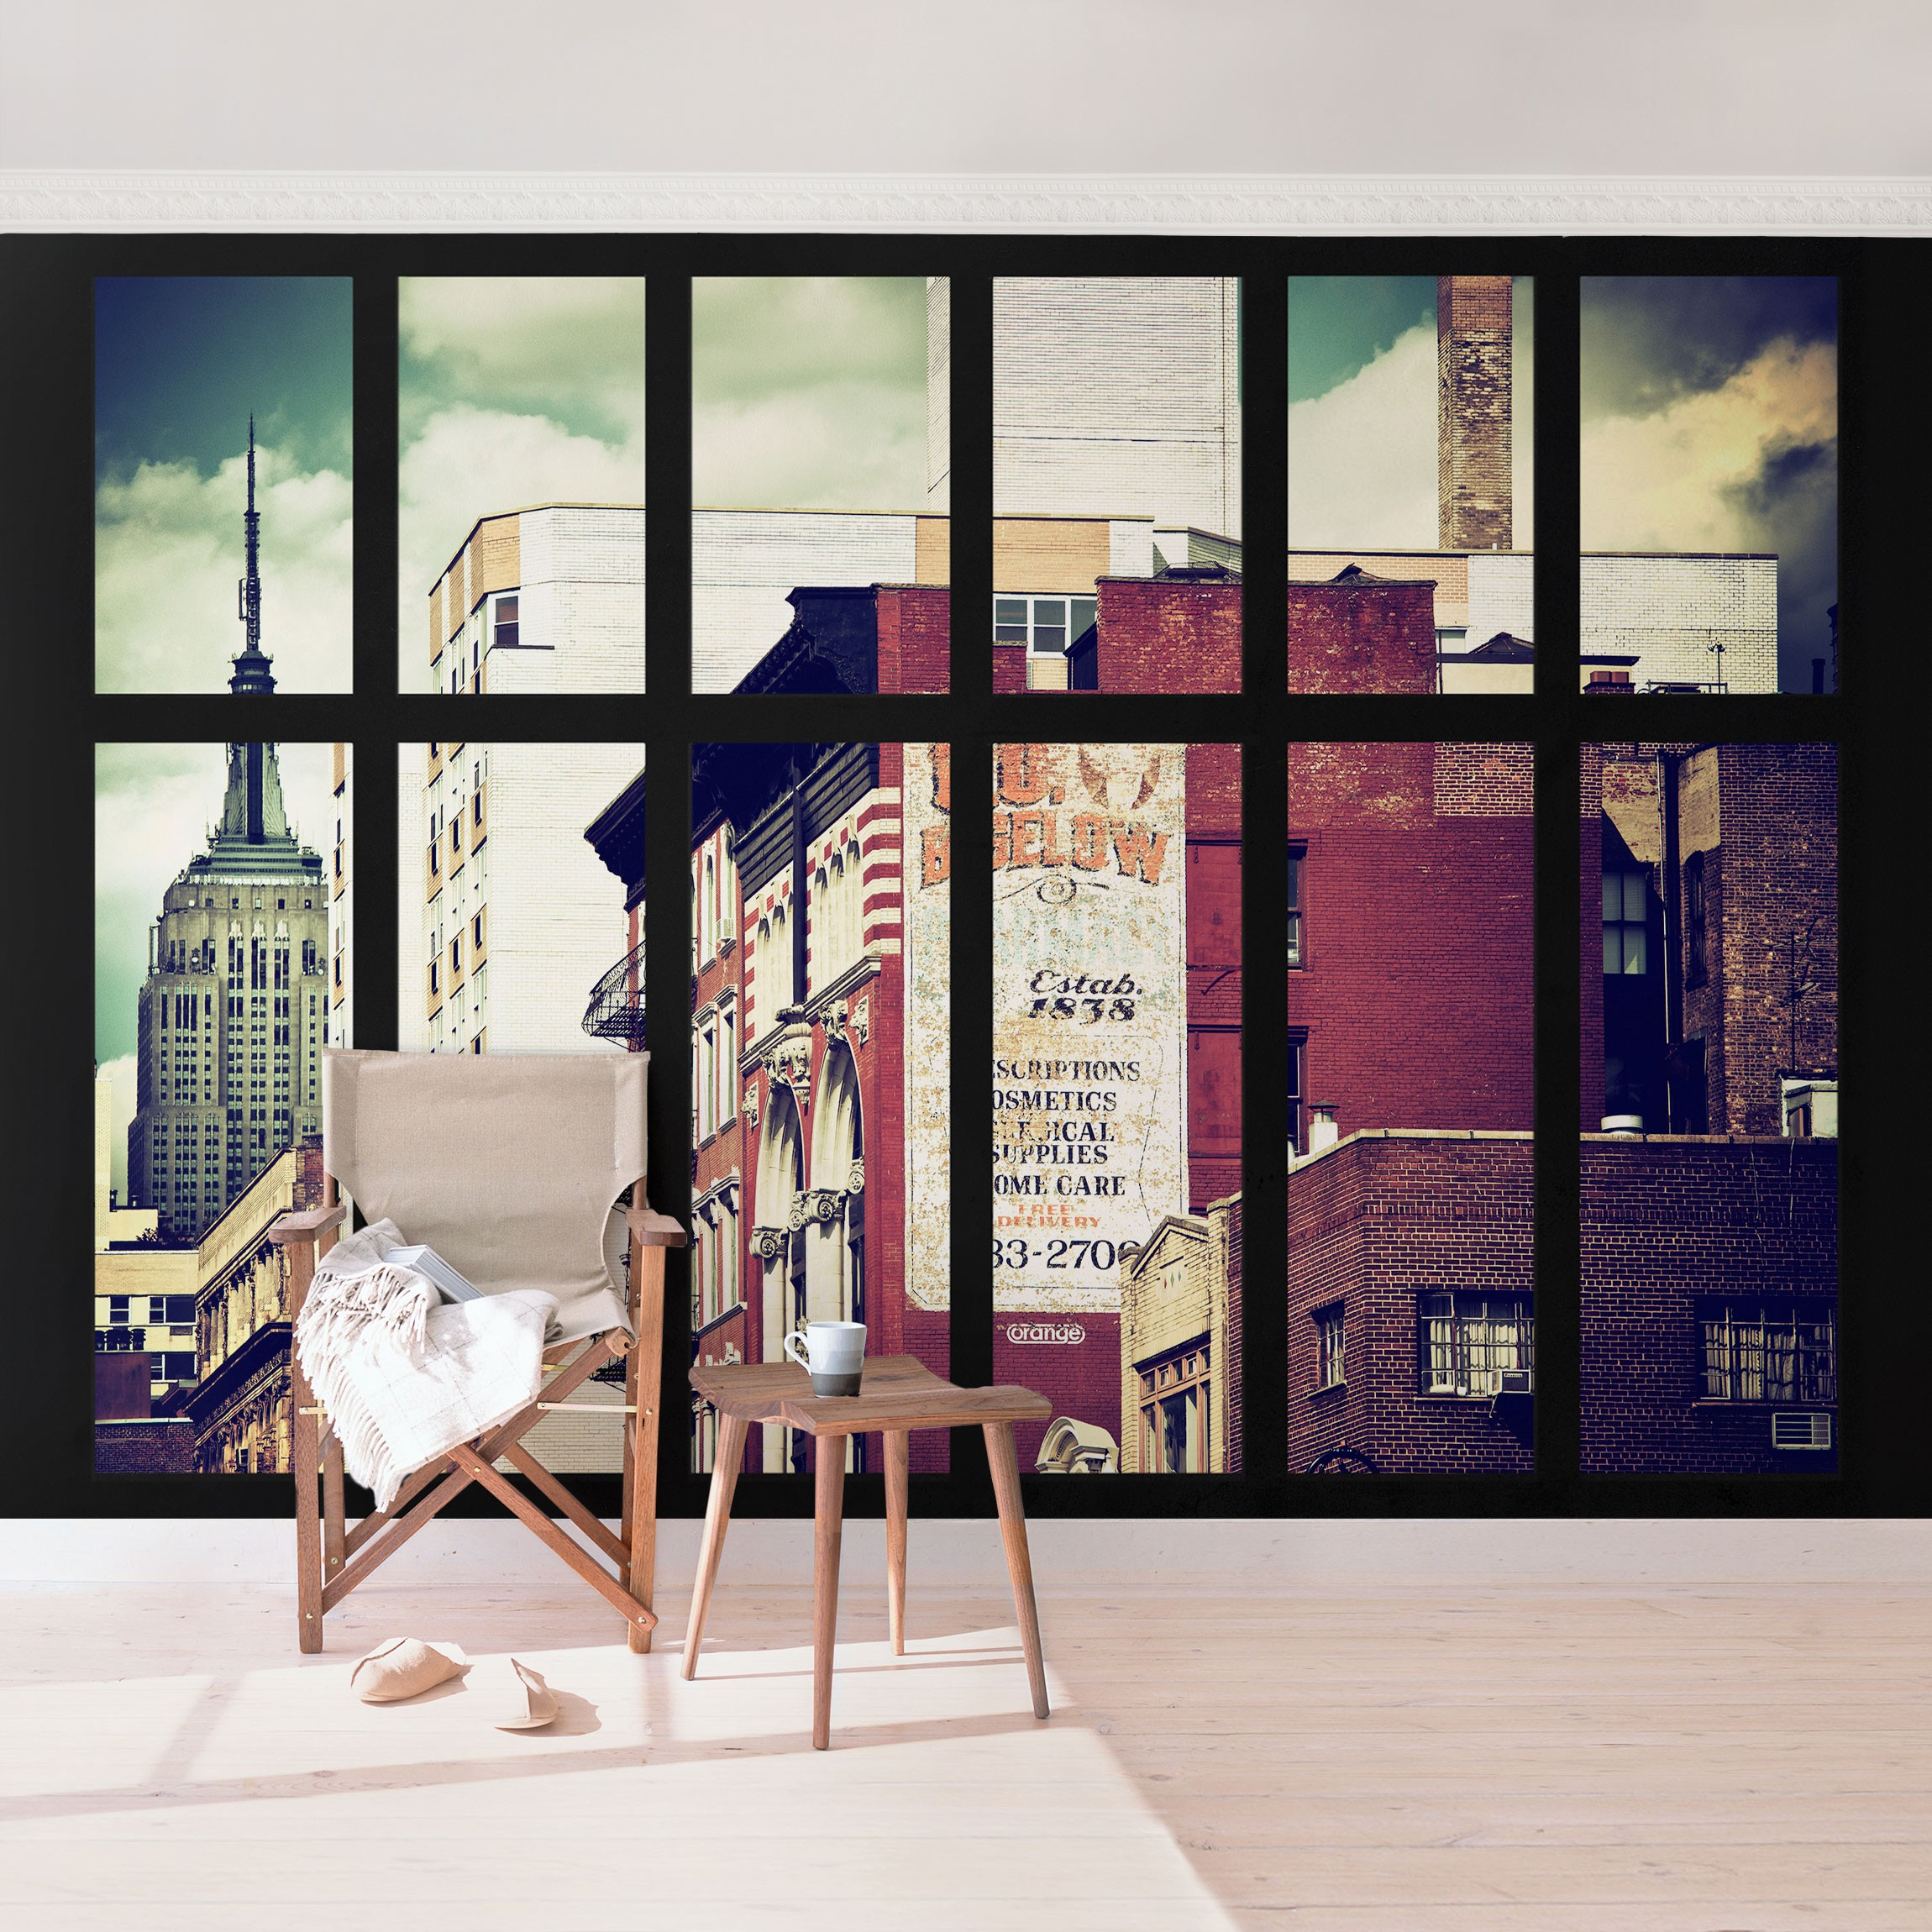 new york fototapete selbstklebend fensterblick auf new york geb ude vintage. Black Bedroom Furniture Sets. Home Design Ideas